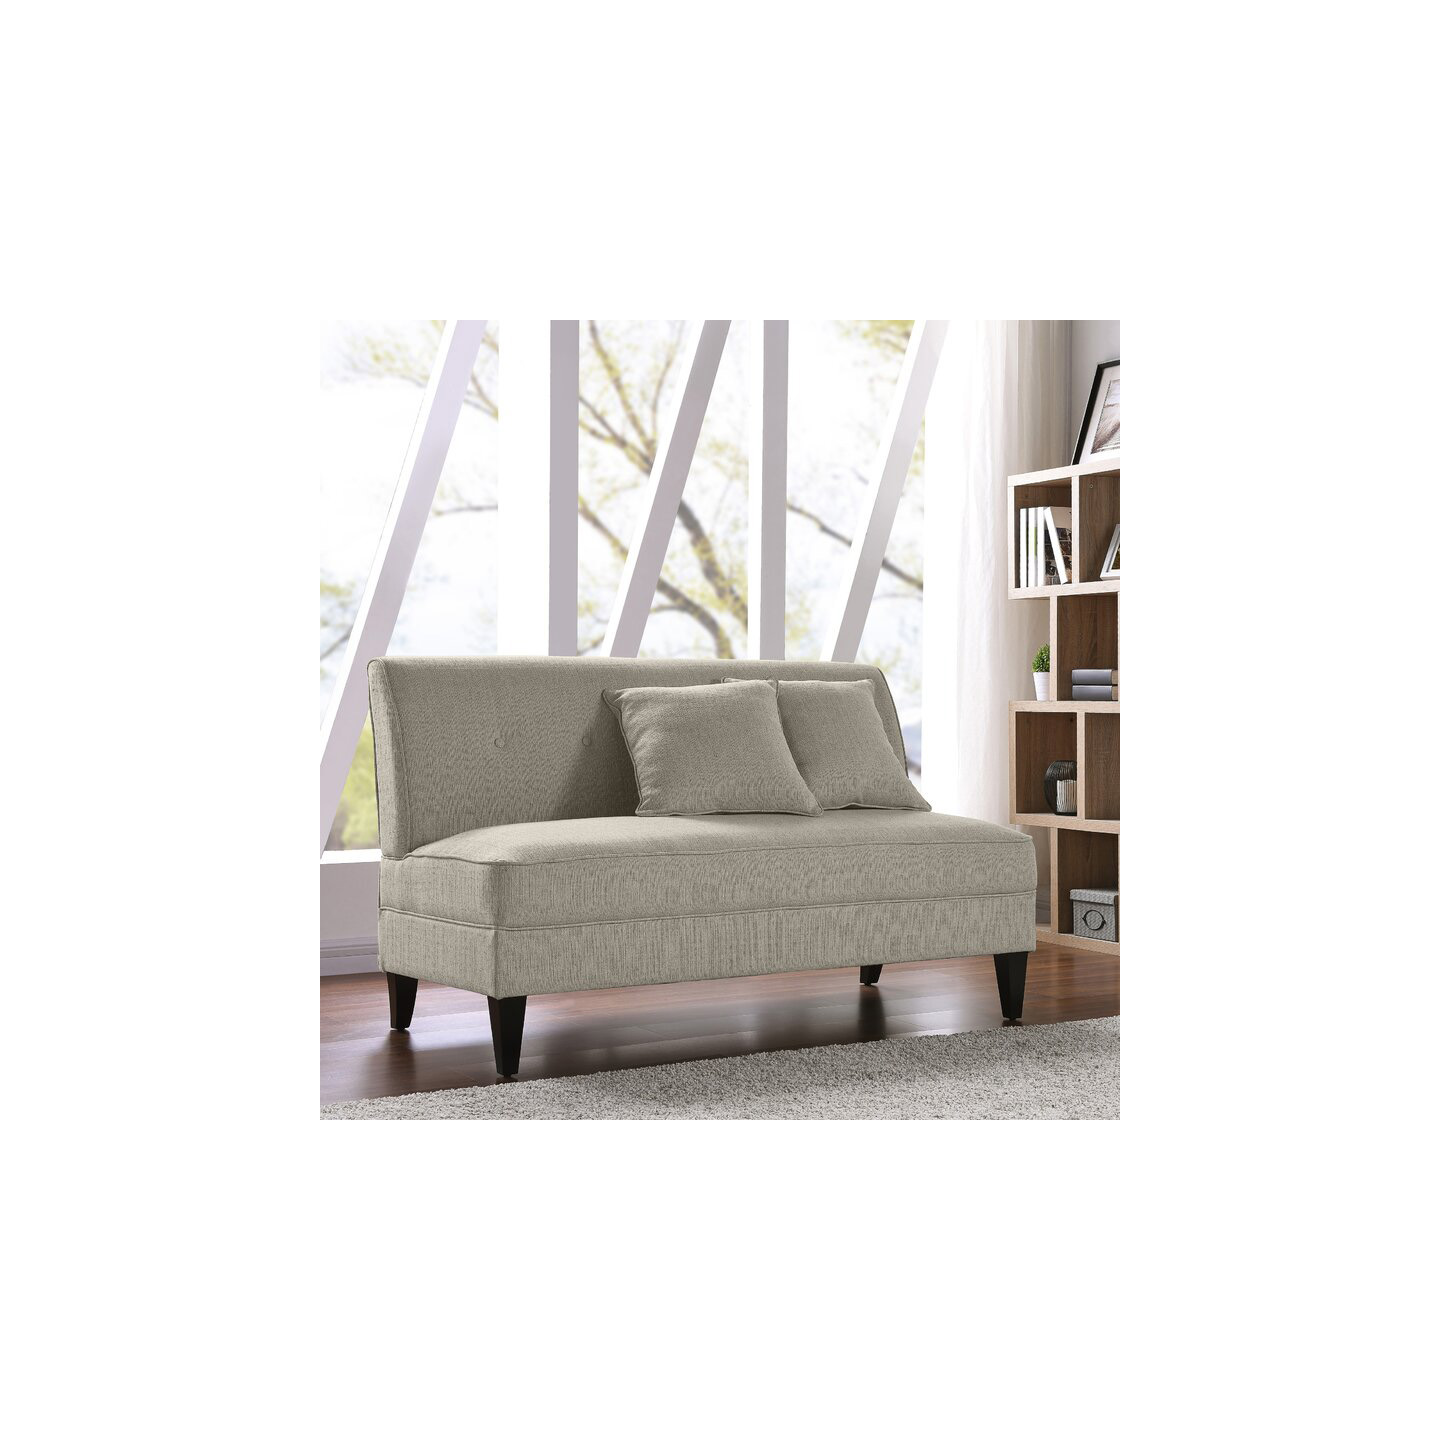 Wayfair Sales 2019 And Best Selling Wayfair Products To